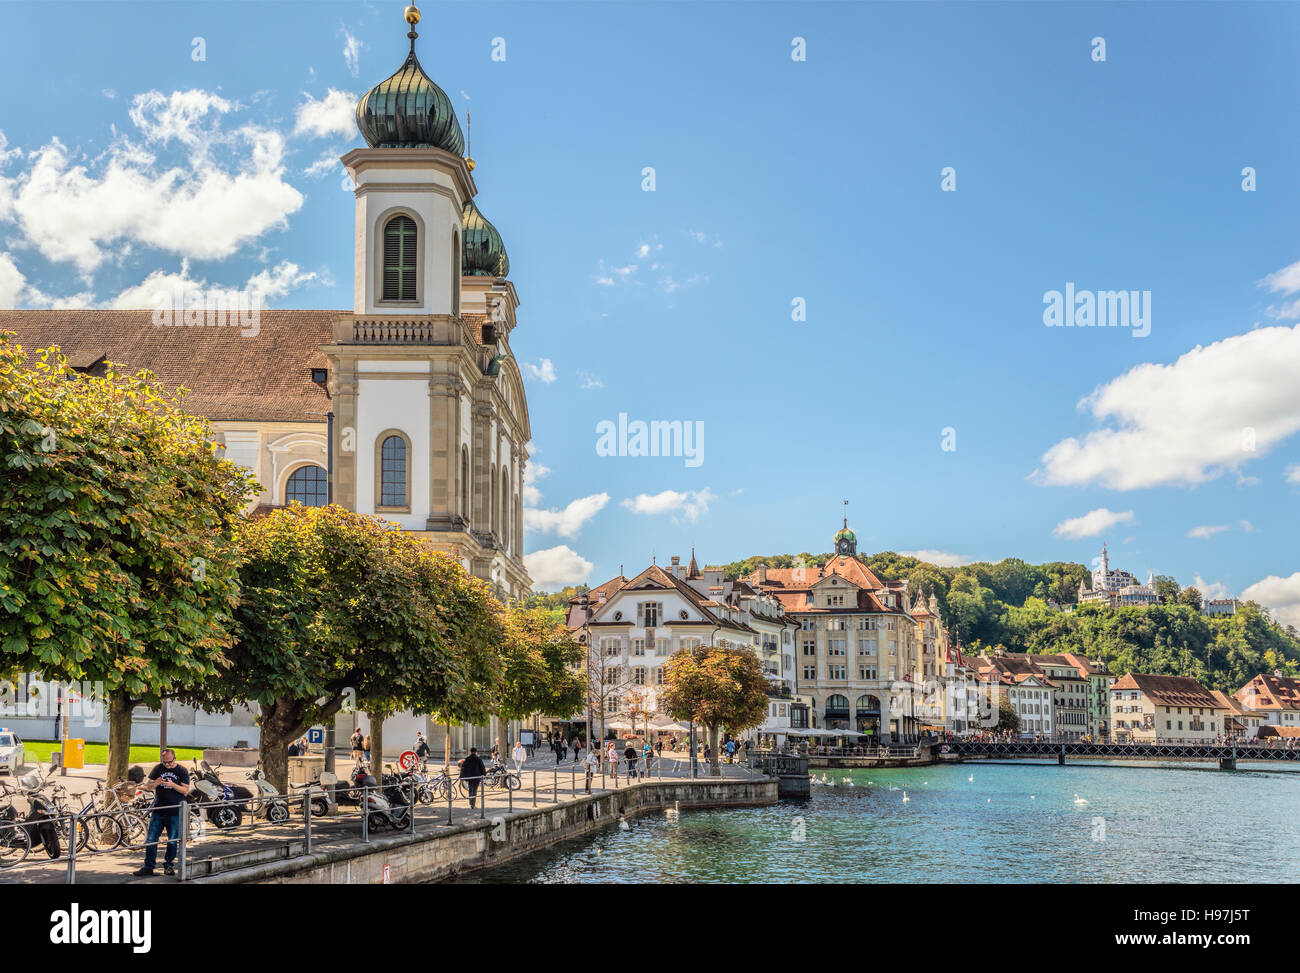 Jesuit Church in the historical old town of Lucerne in Switzerland. Its built between 1666 bis 1677 and is one of - Stock Image